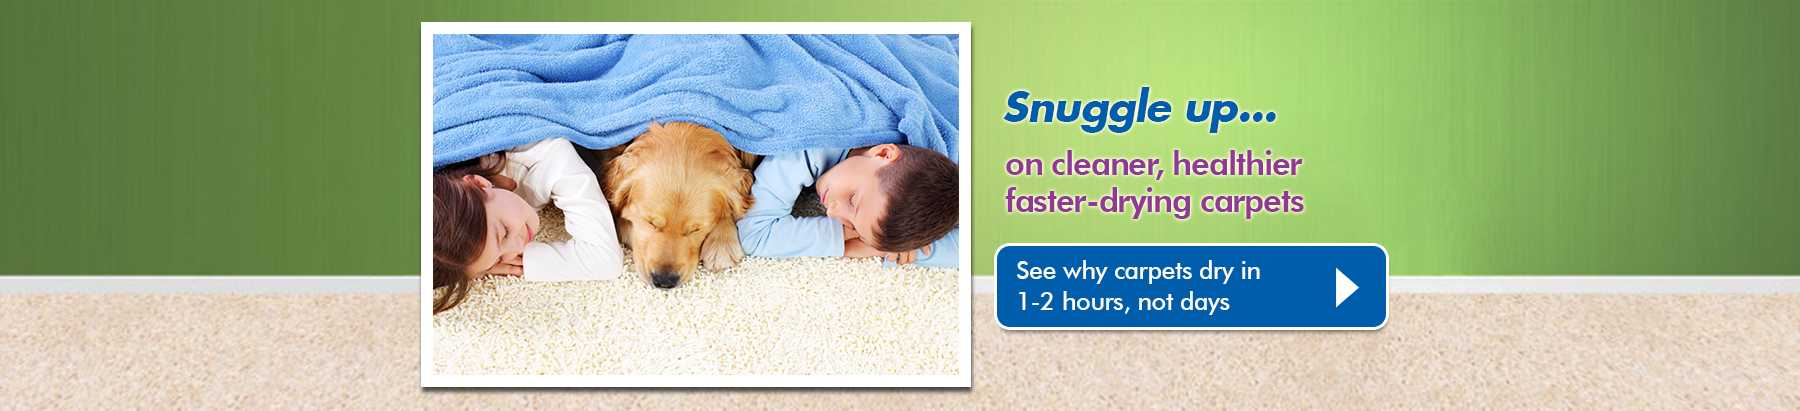 Why Chem-Dry Carpet Cleaning